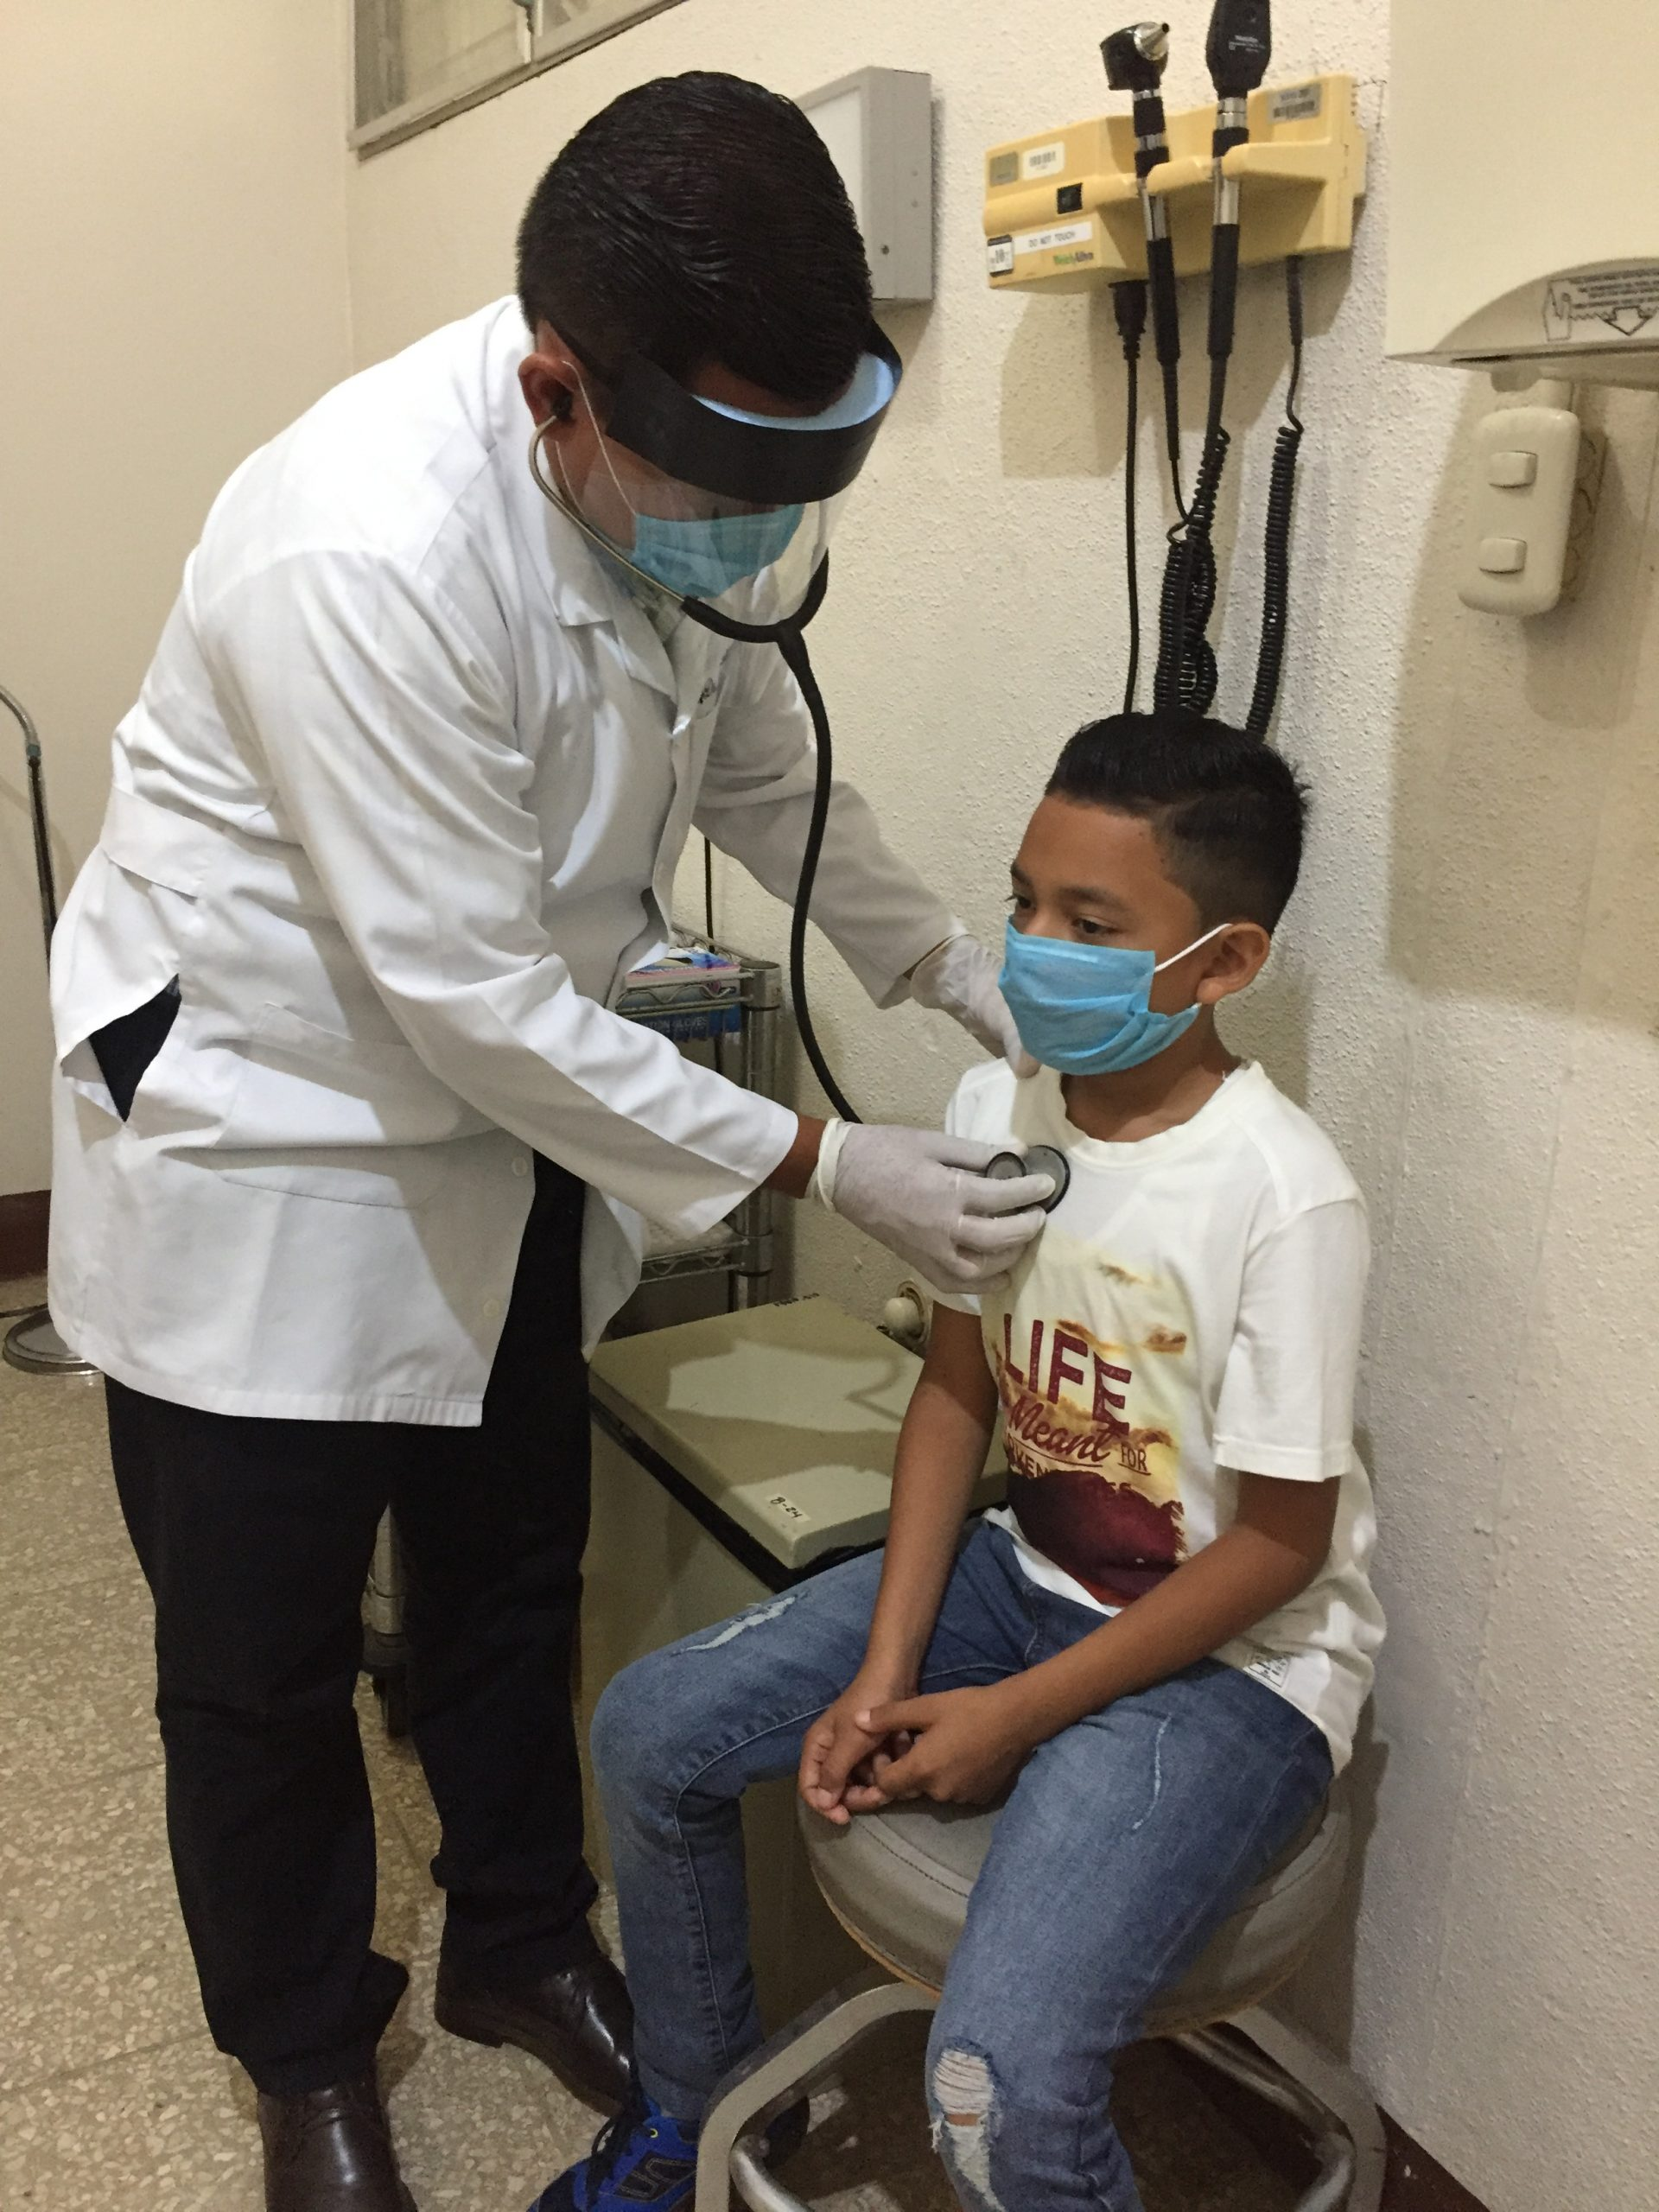 A doctor listens to the heart of a young patient at the Samaritan Clinic in Nicaragua.